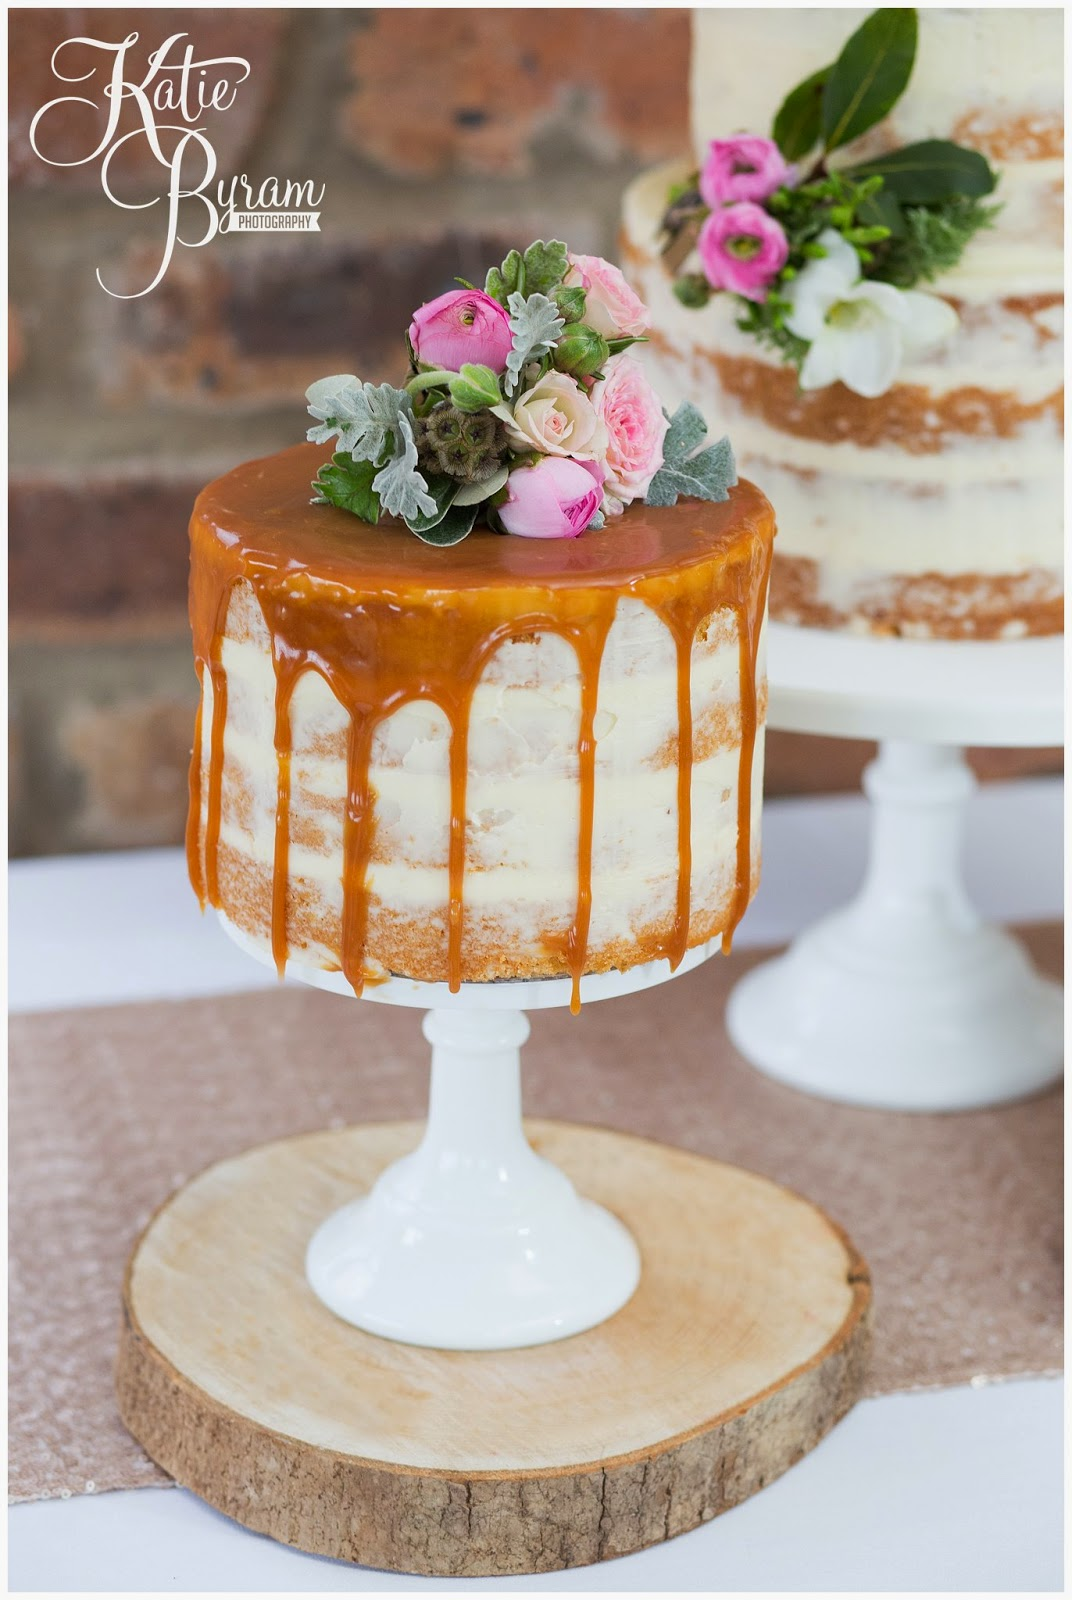 salted caramel wedding cake, the master cakesmith, dawn cake maker, newton hall, ellingham hall, alnwick garden, northumberland wedding cake, northumberland wedding, katie byram photography